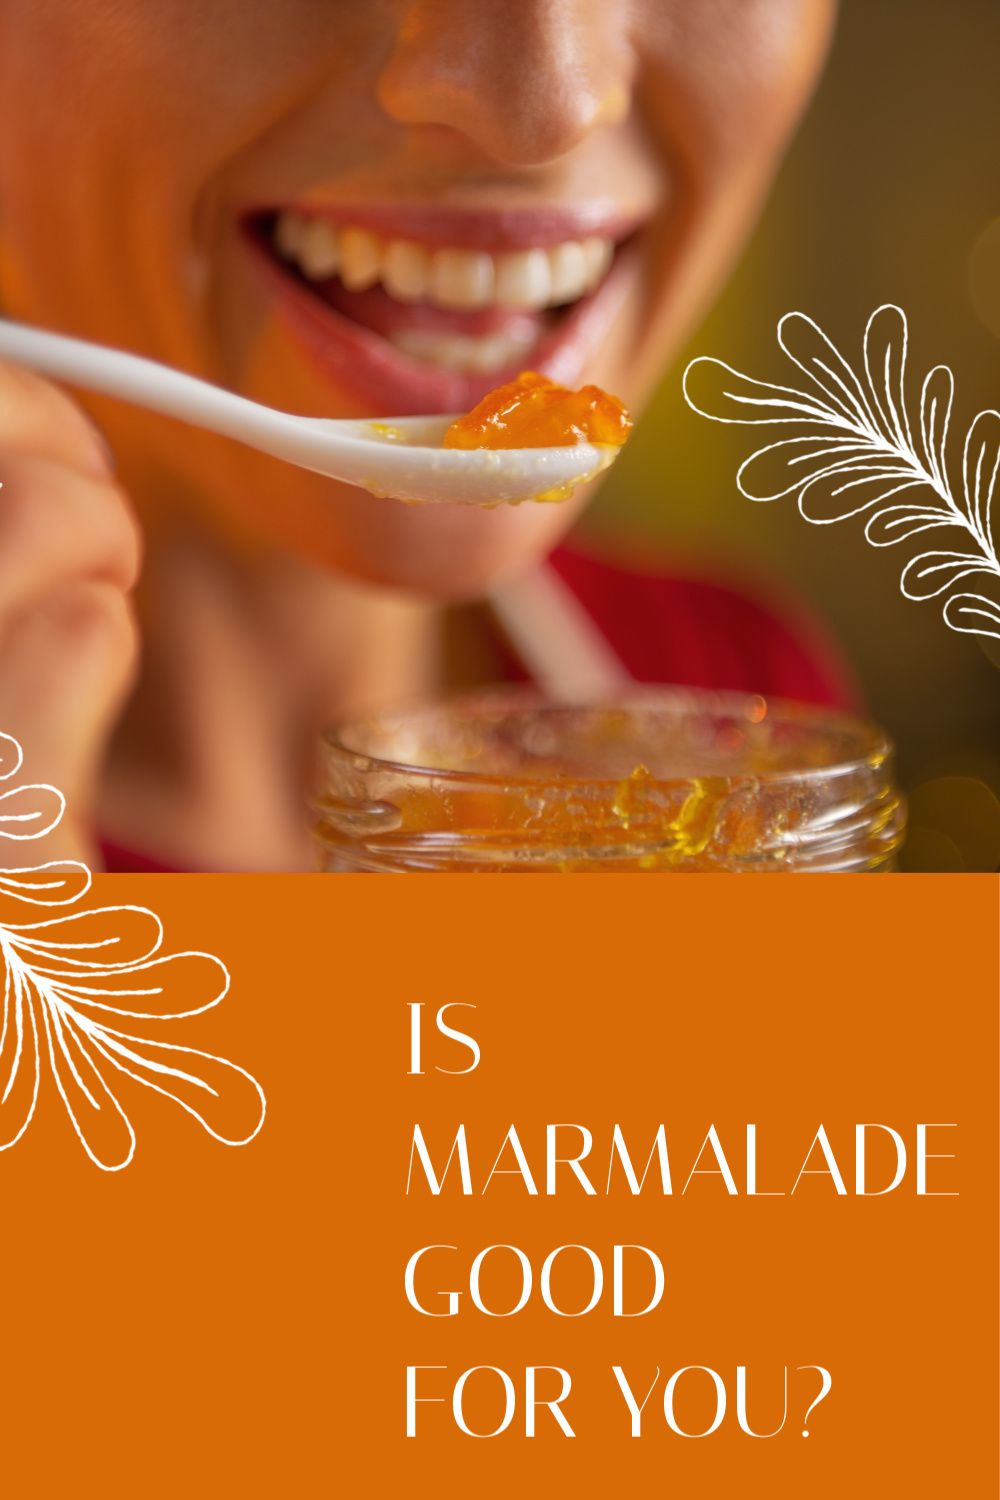 Is marmalade good for you?